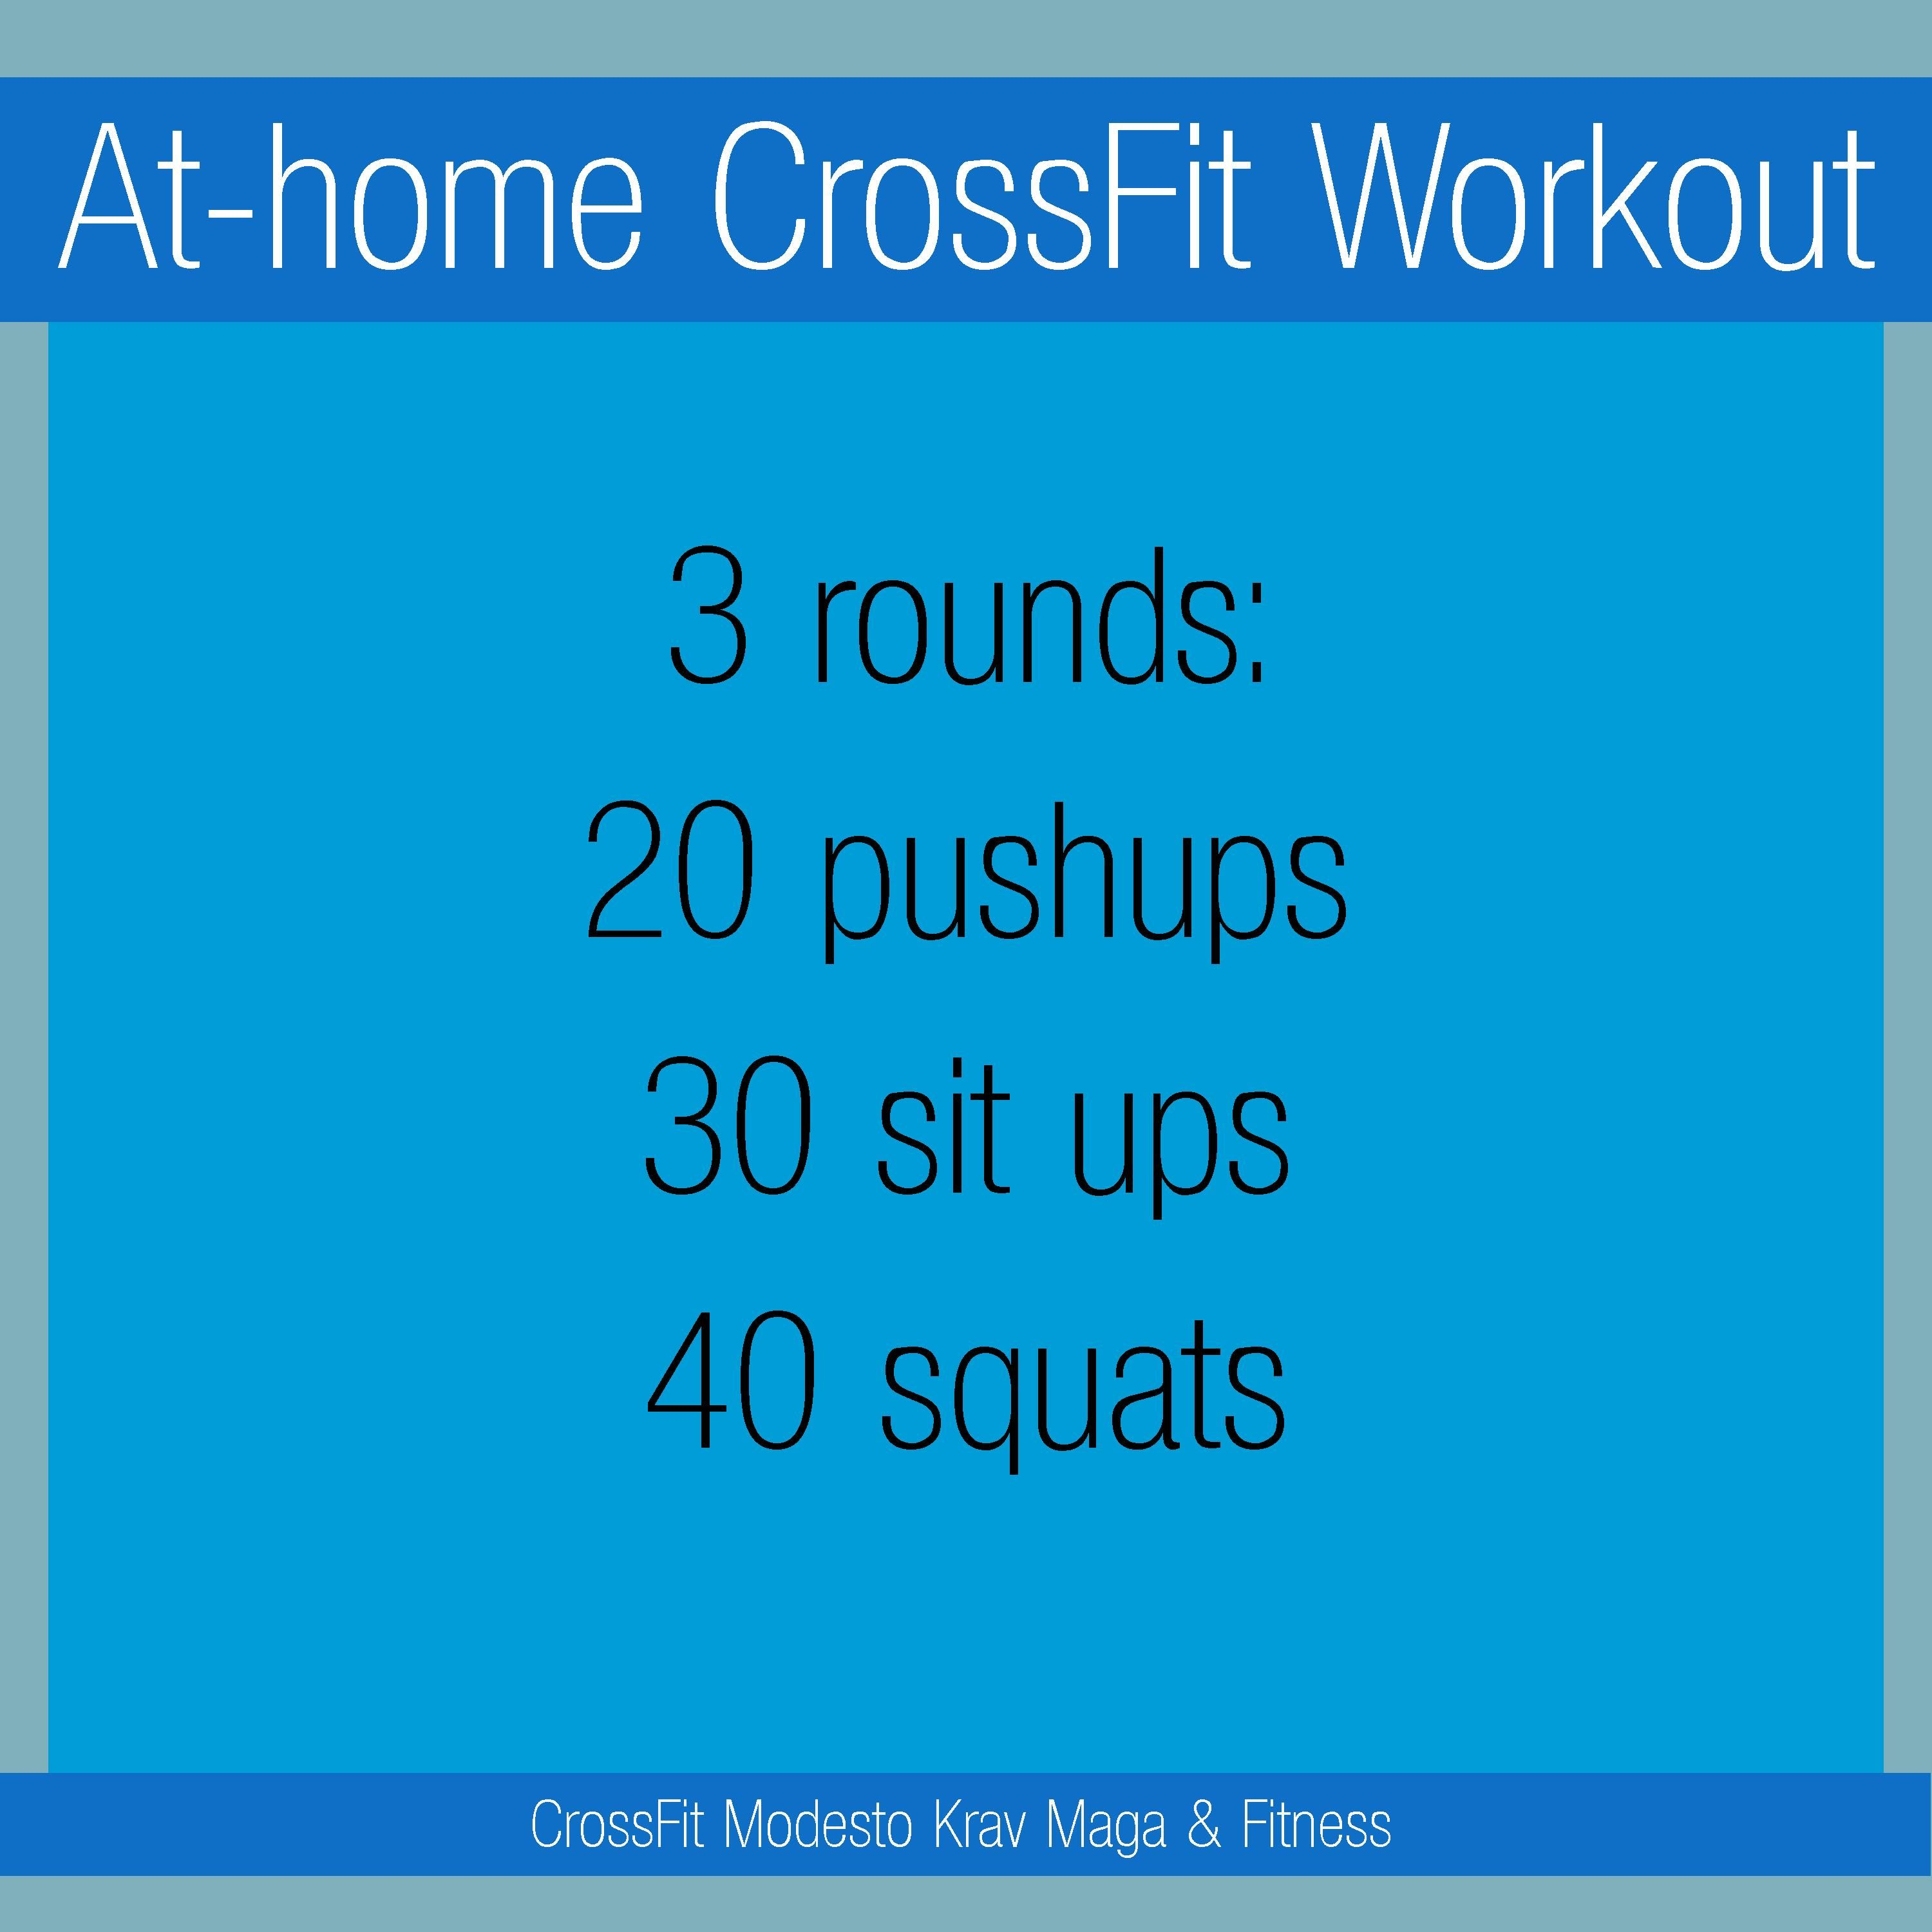 Results Crossfit Workout: At-home Full Body CrossFit Workout, Zero Equipment